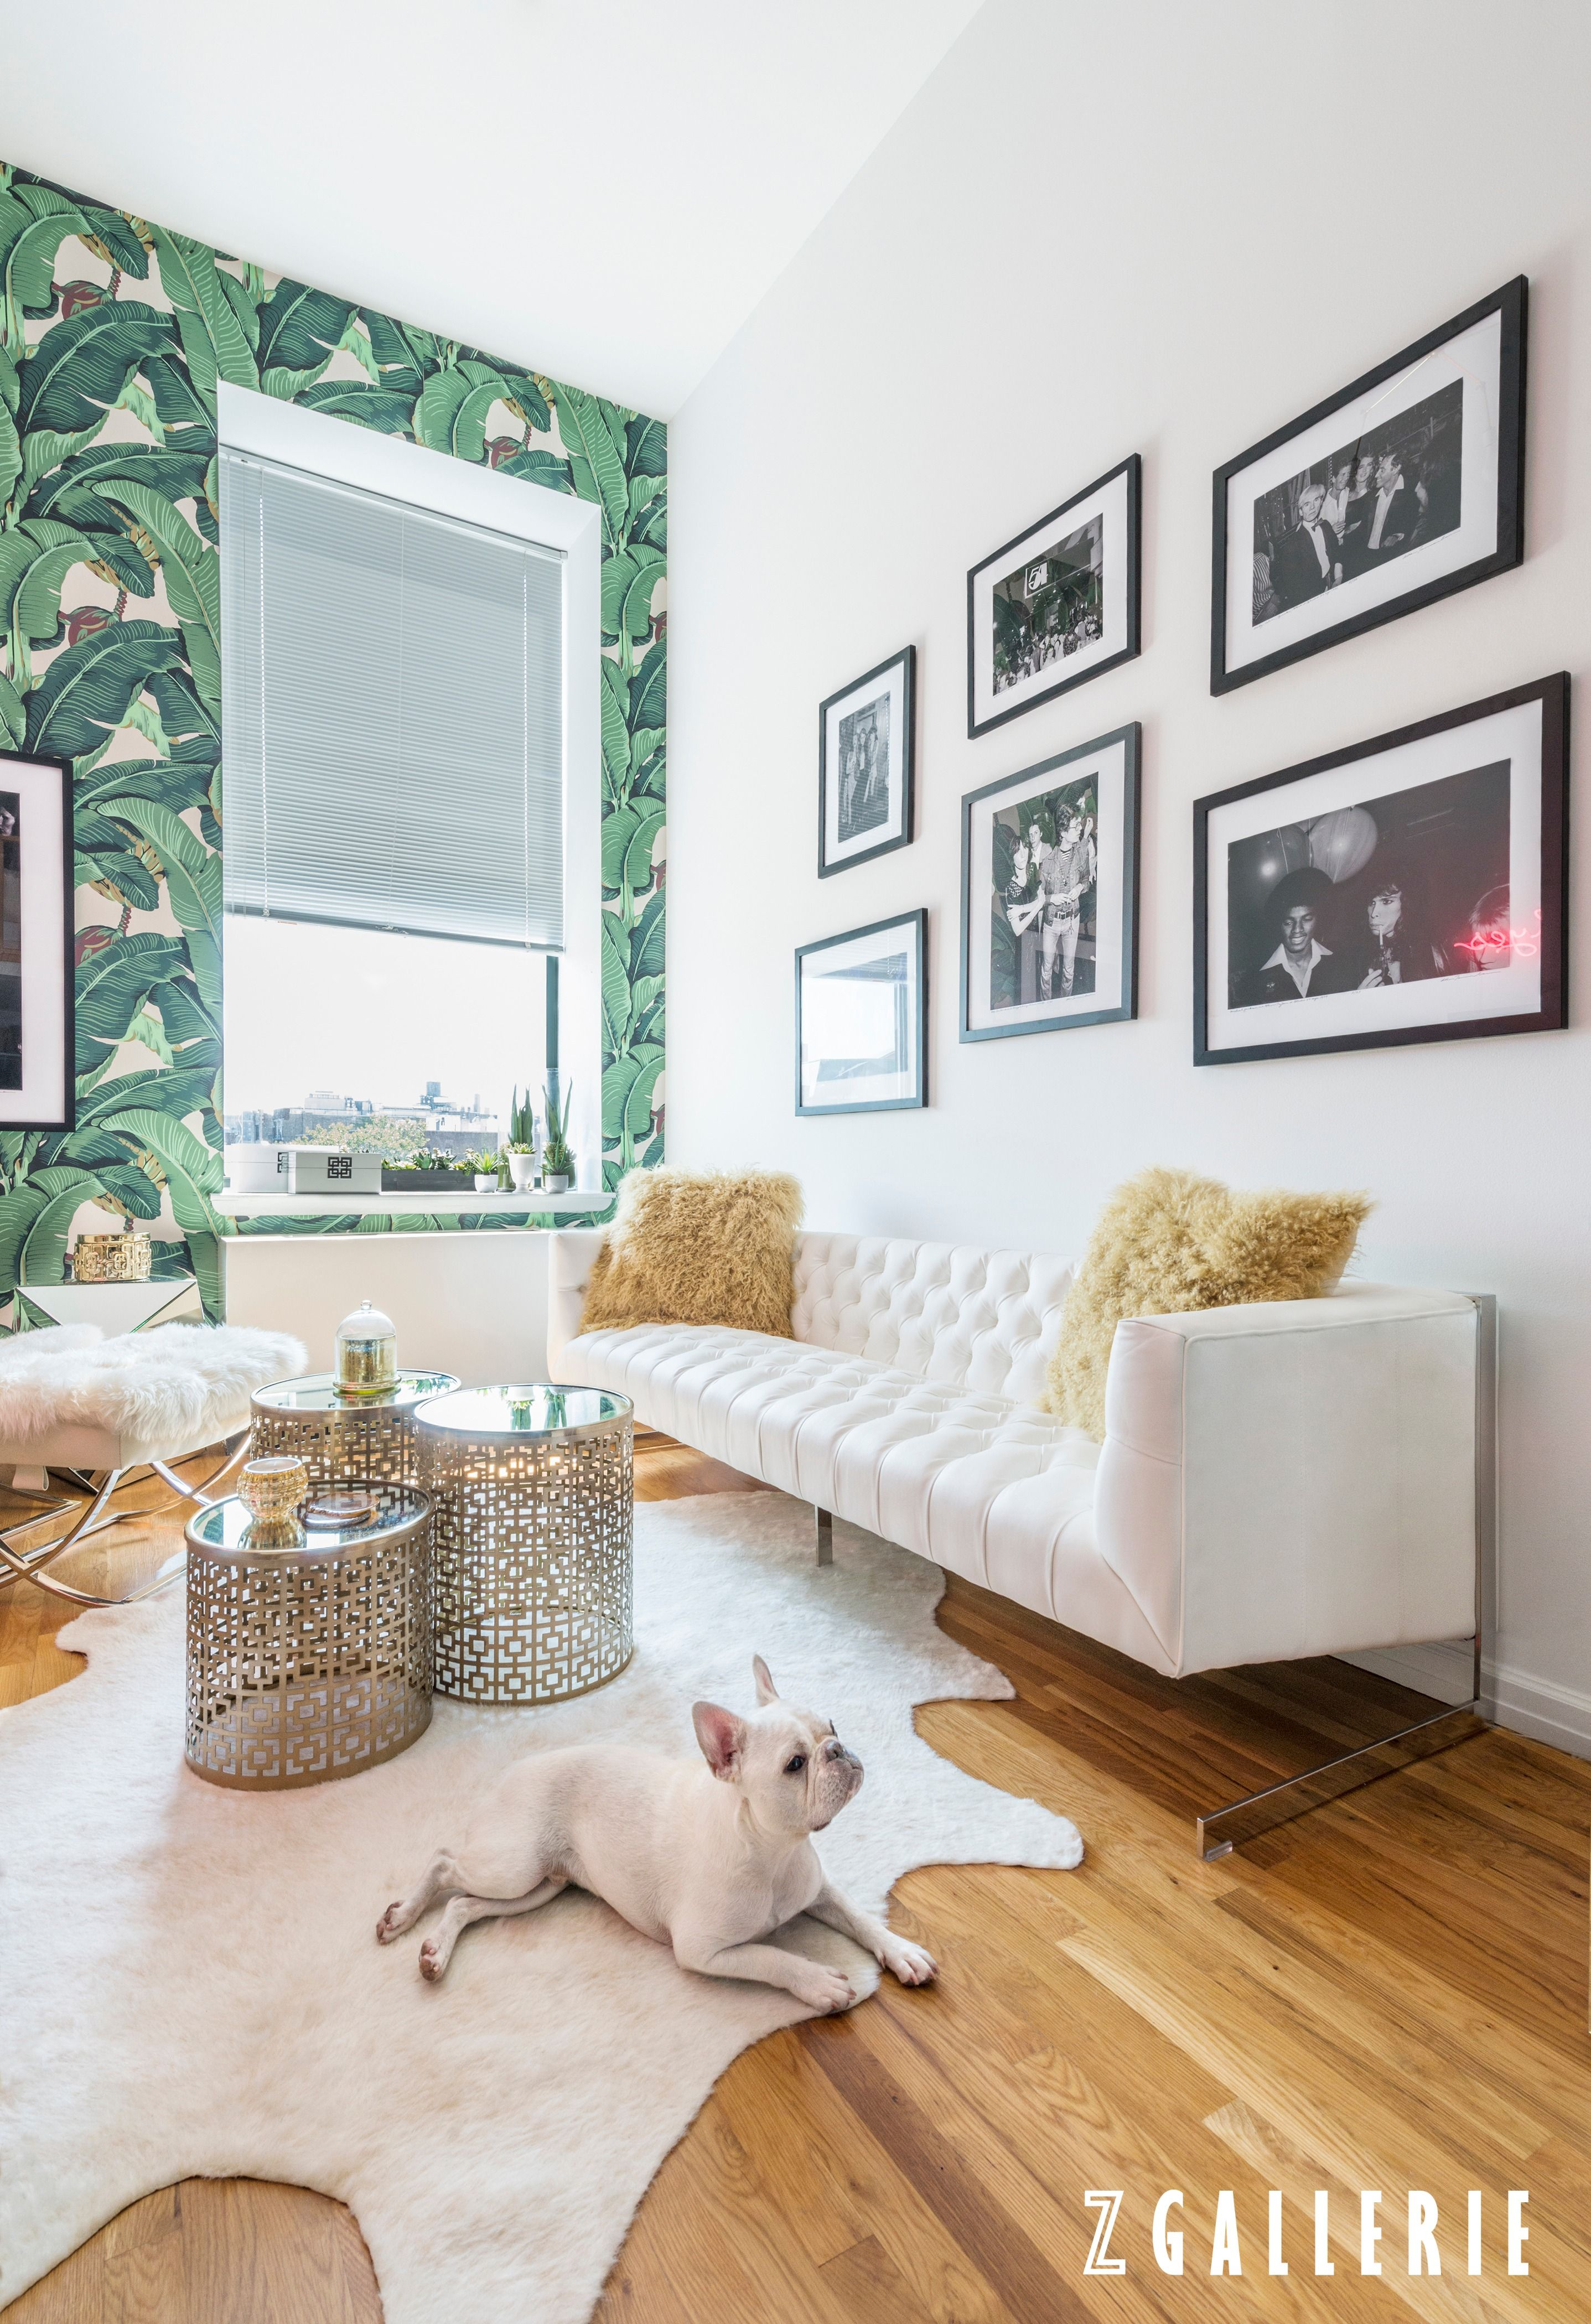 home tour small spaces makeover with style influencer weworewhat ina chic small spaces home makeover with nyc style influencer @weworewhat click for a full tour on zgallerie com